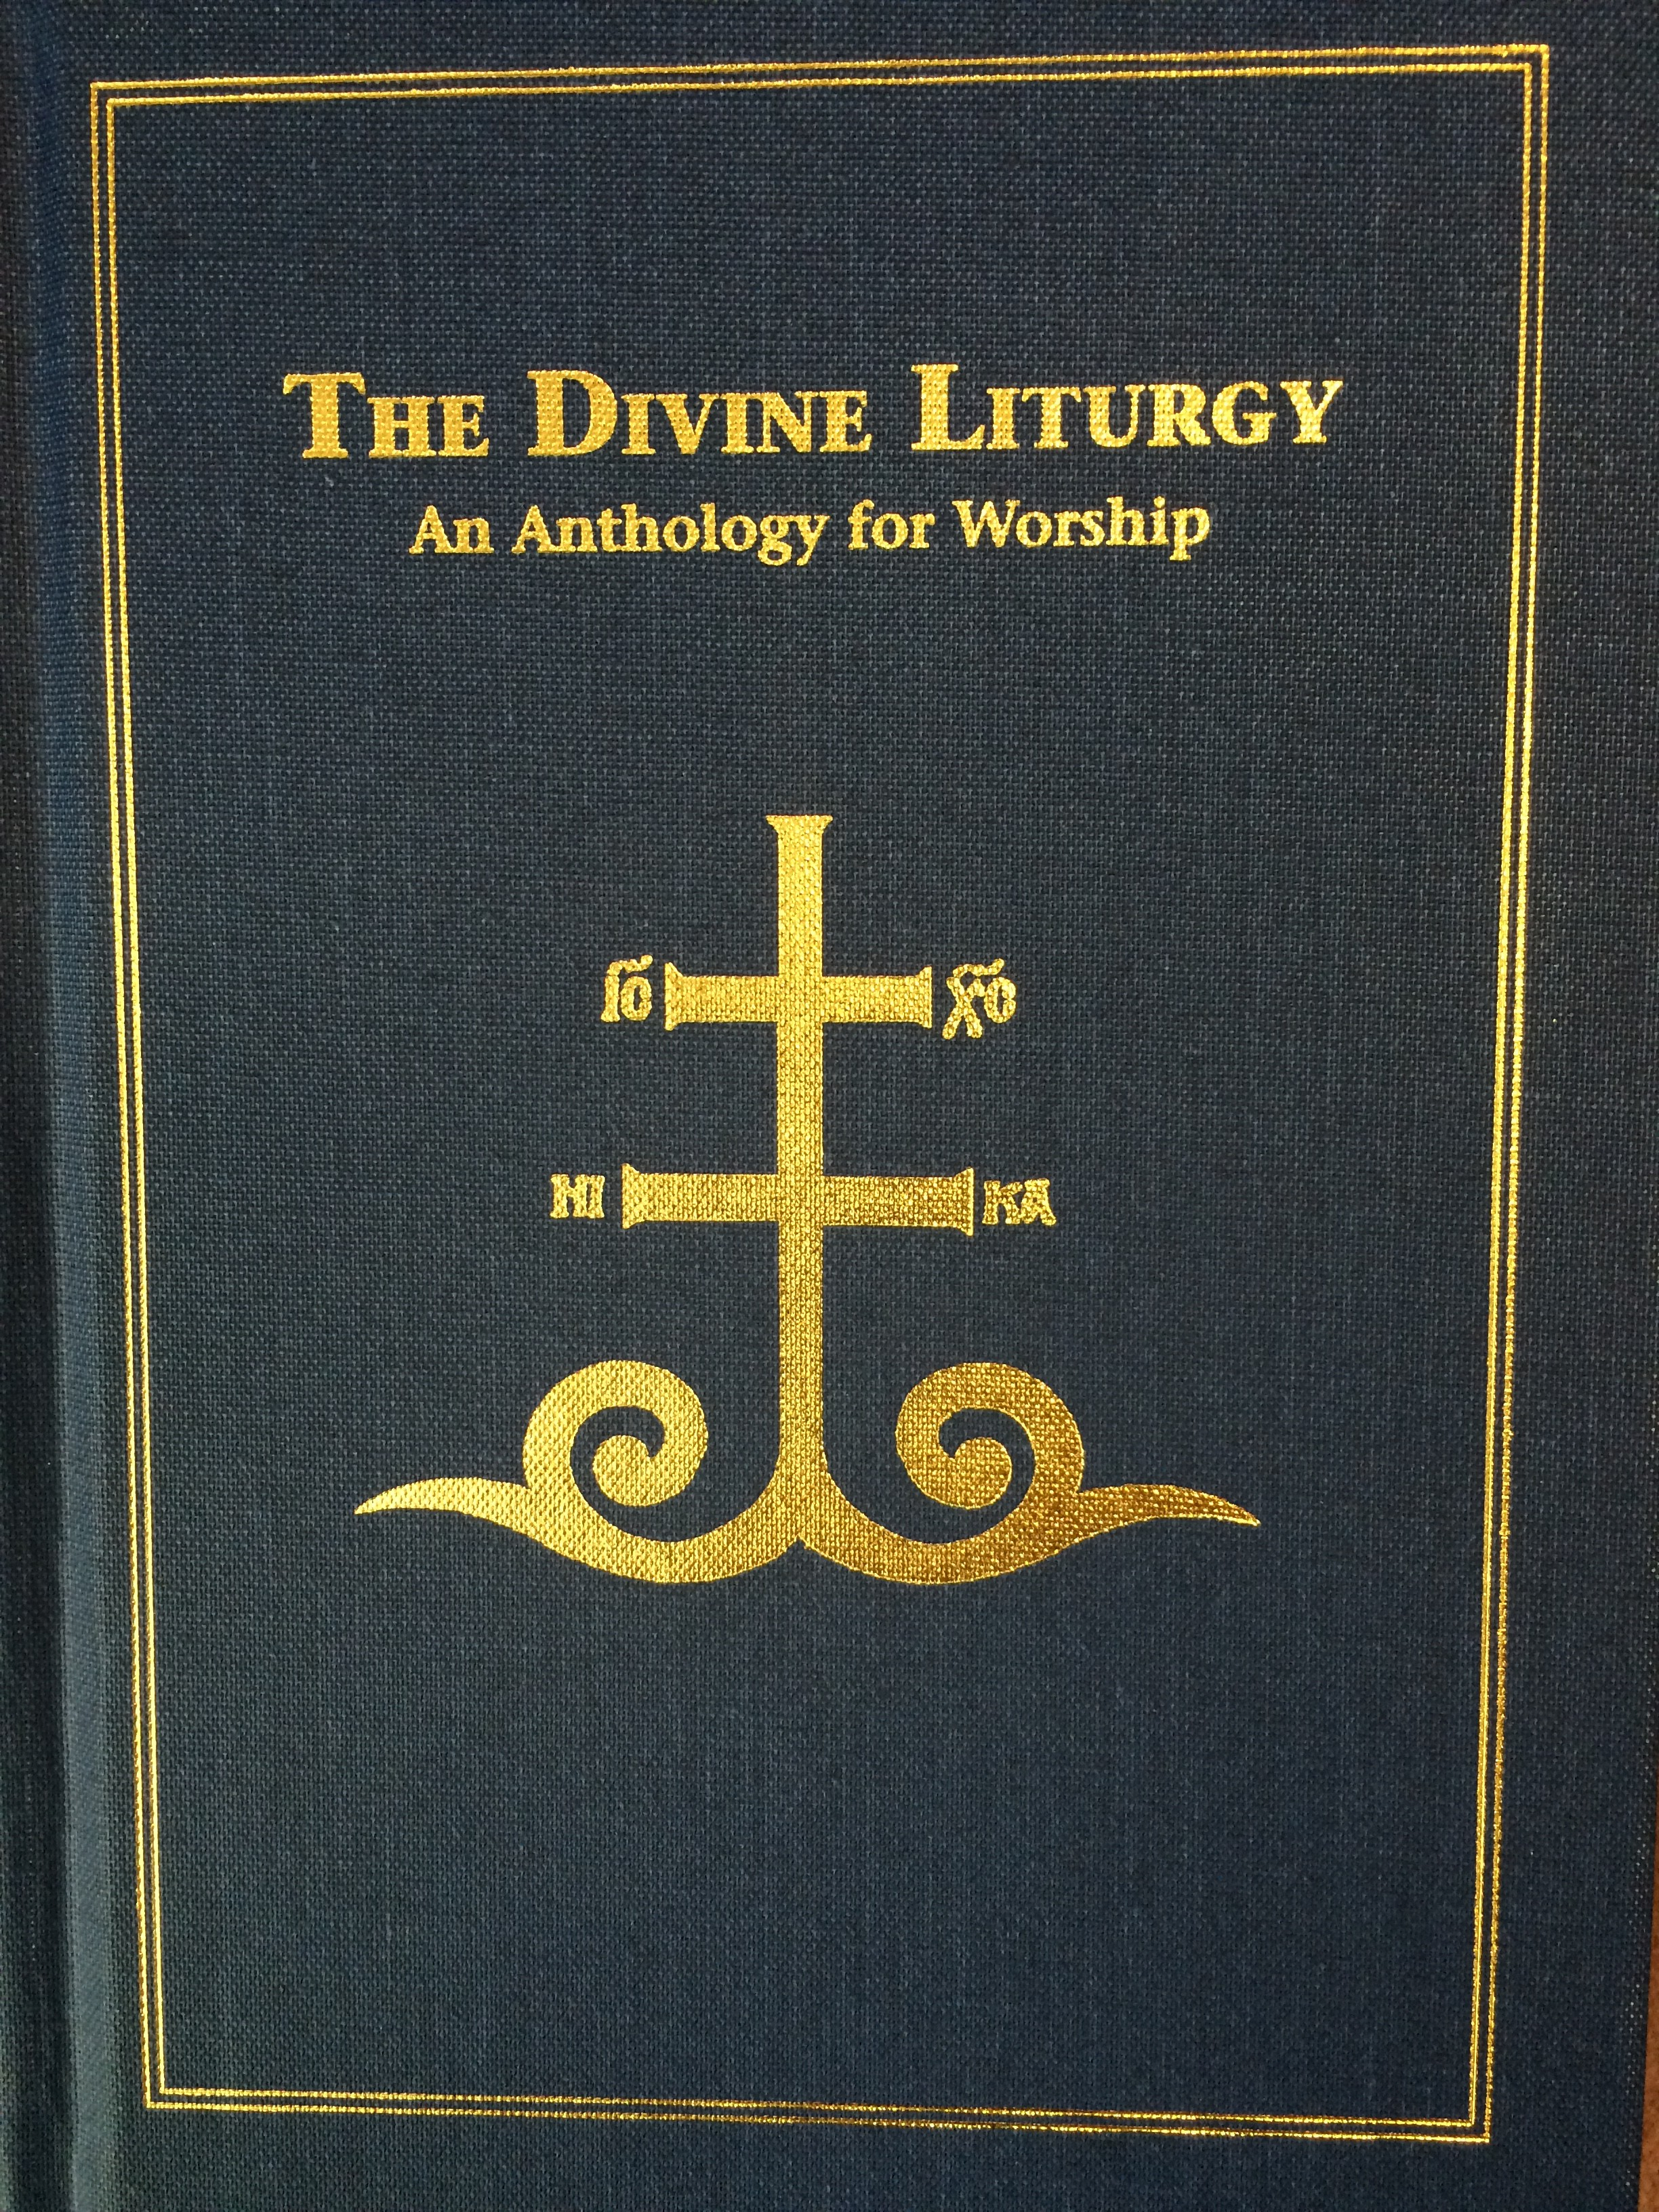 VIDEO: The Divine Liturgy – An Anthology for Worship – Father Peter Galadza – Part 1